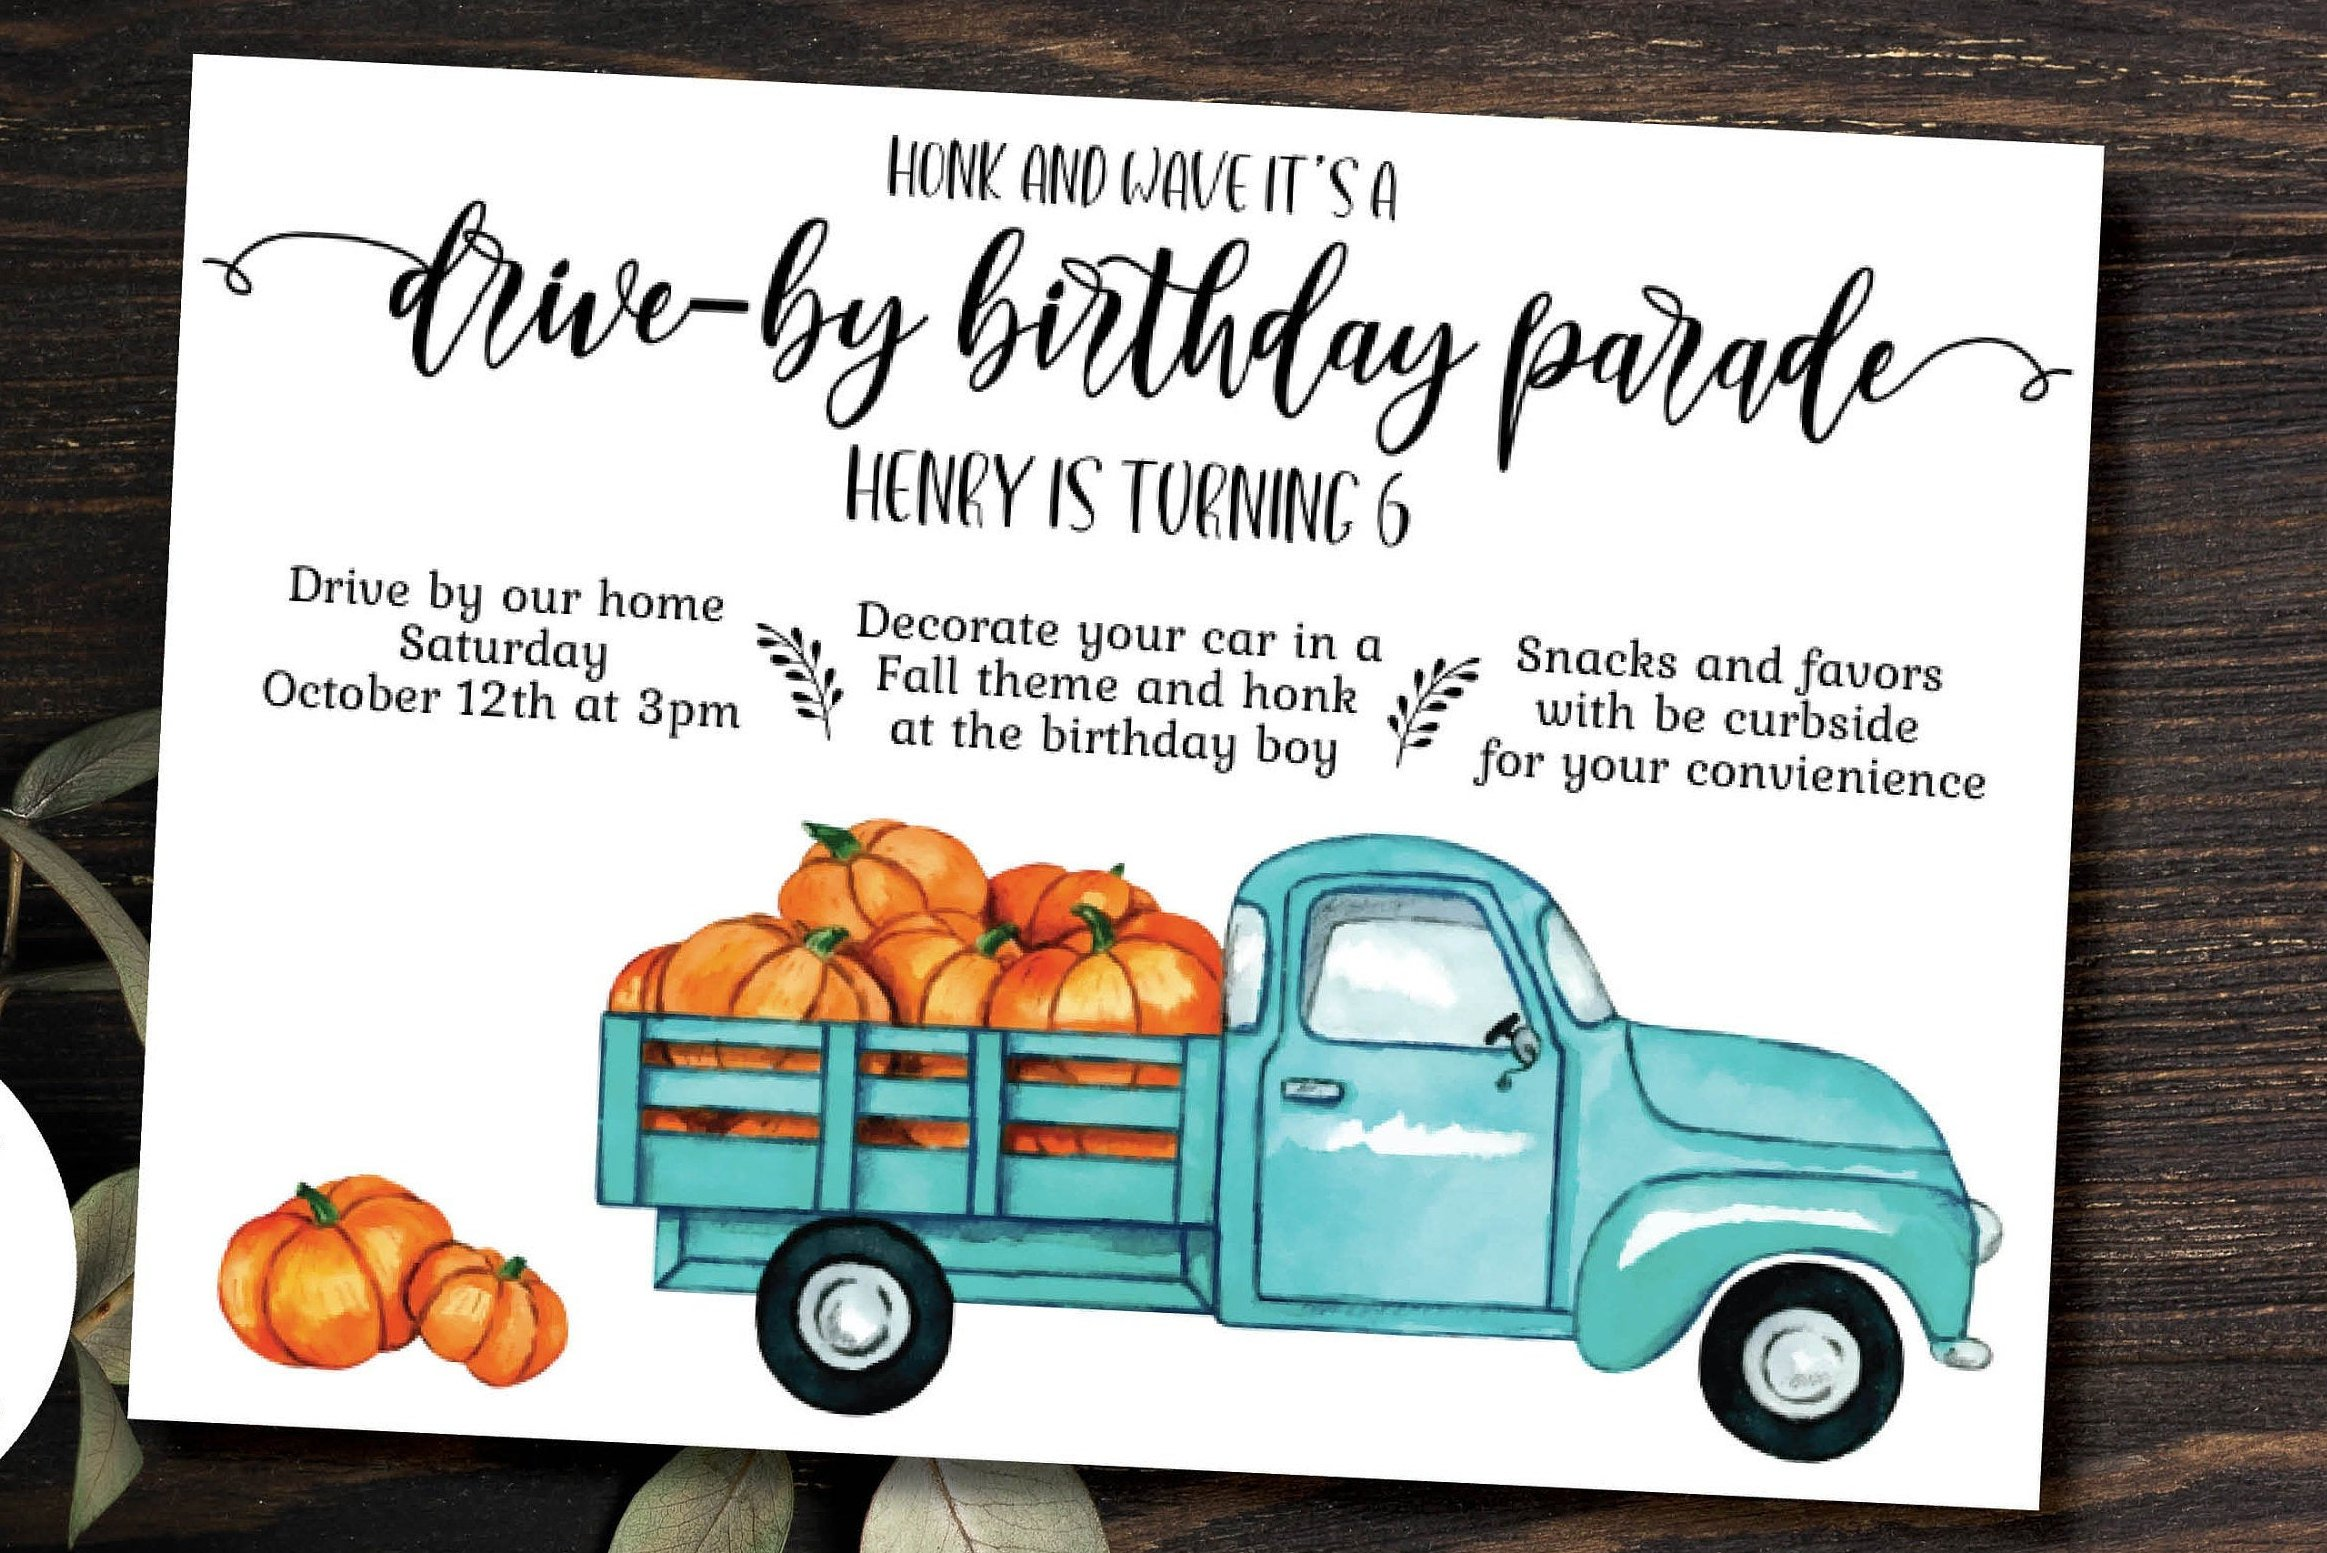 fall birthday parade invitation instant download template drive by birthday party social distance celebration